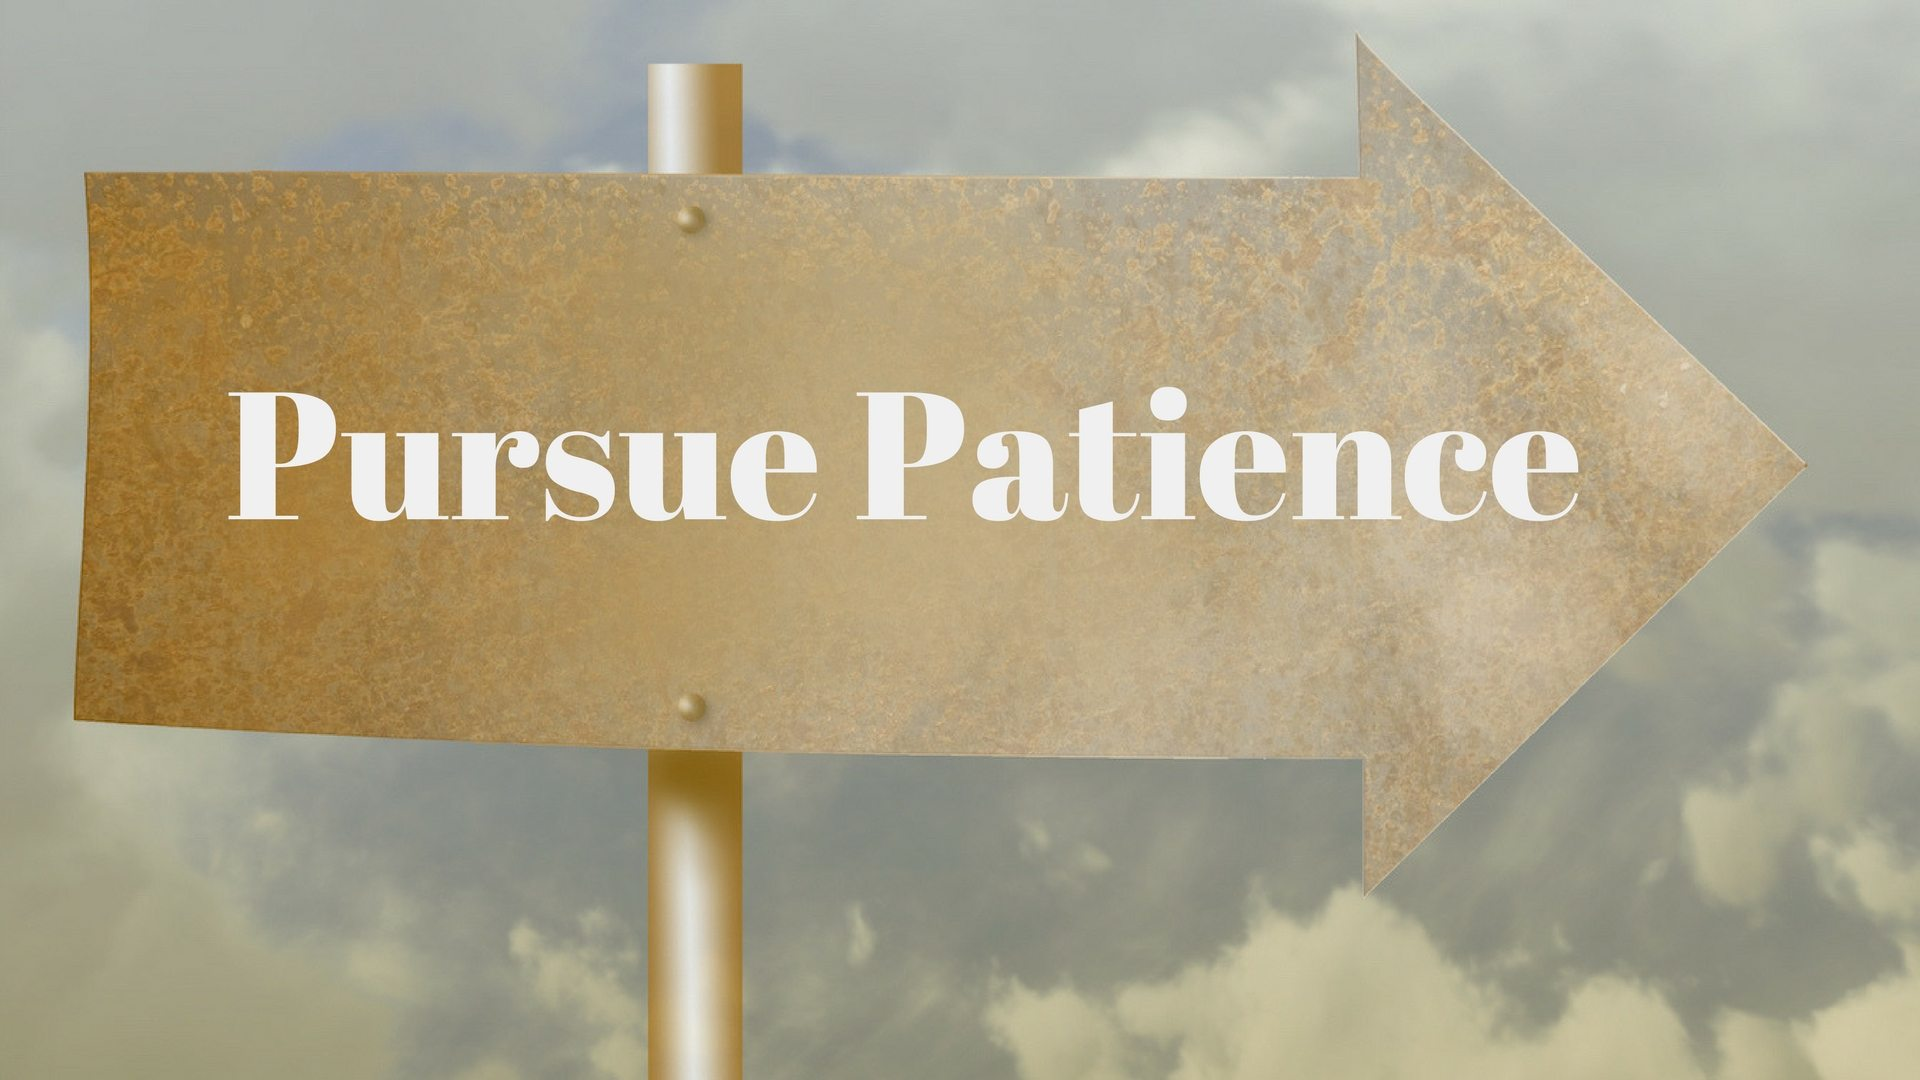 Pursue Patience - Canva - Pixabay